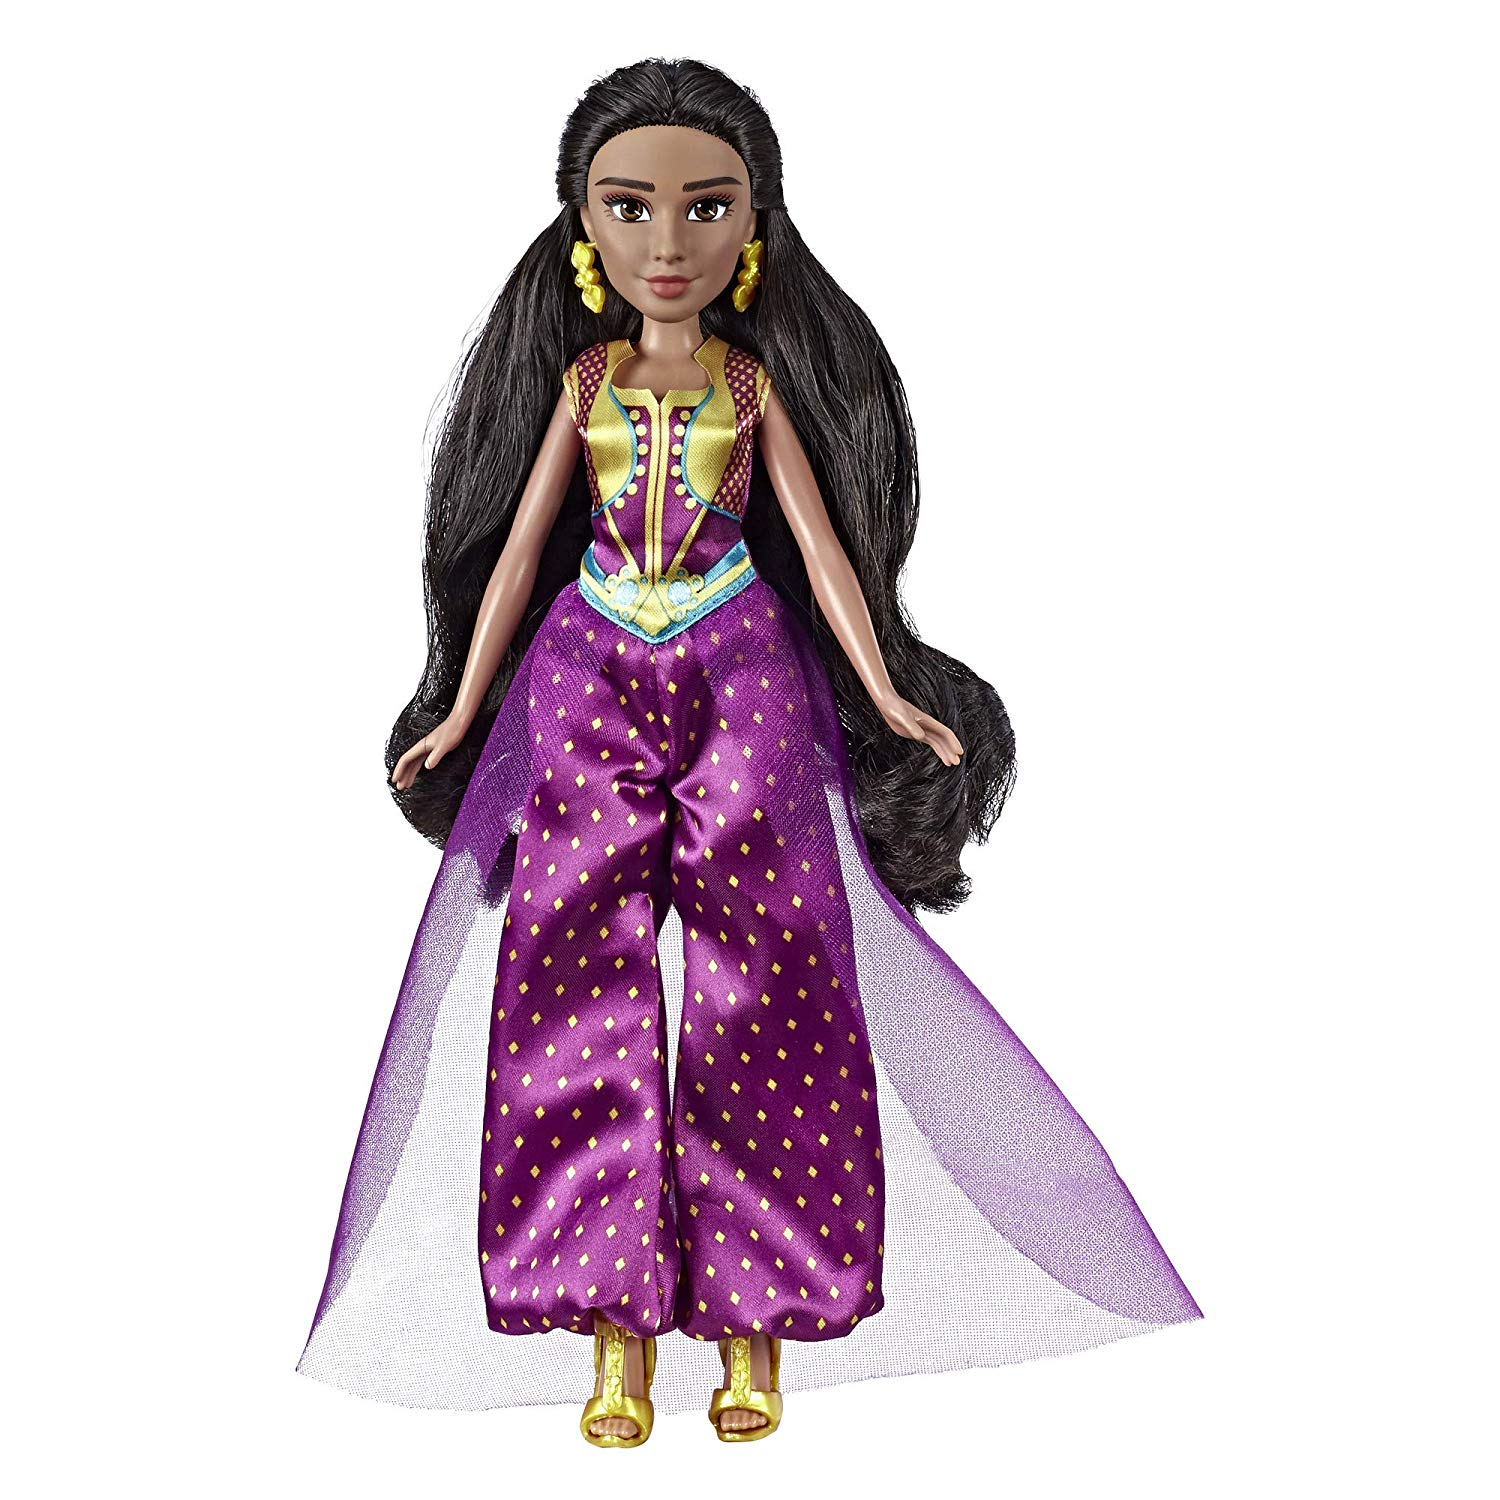 Princess Jasmine Fashion Doll …